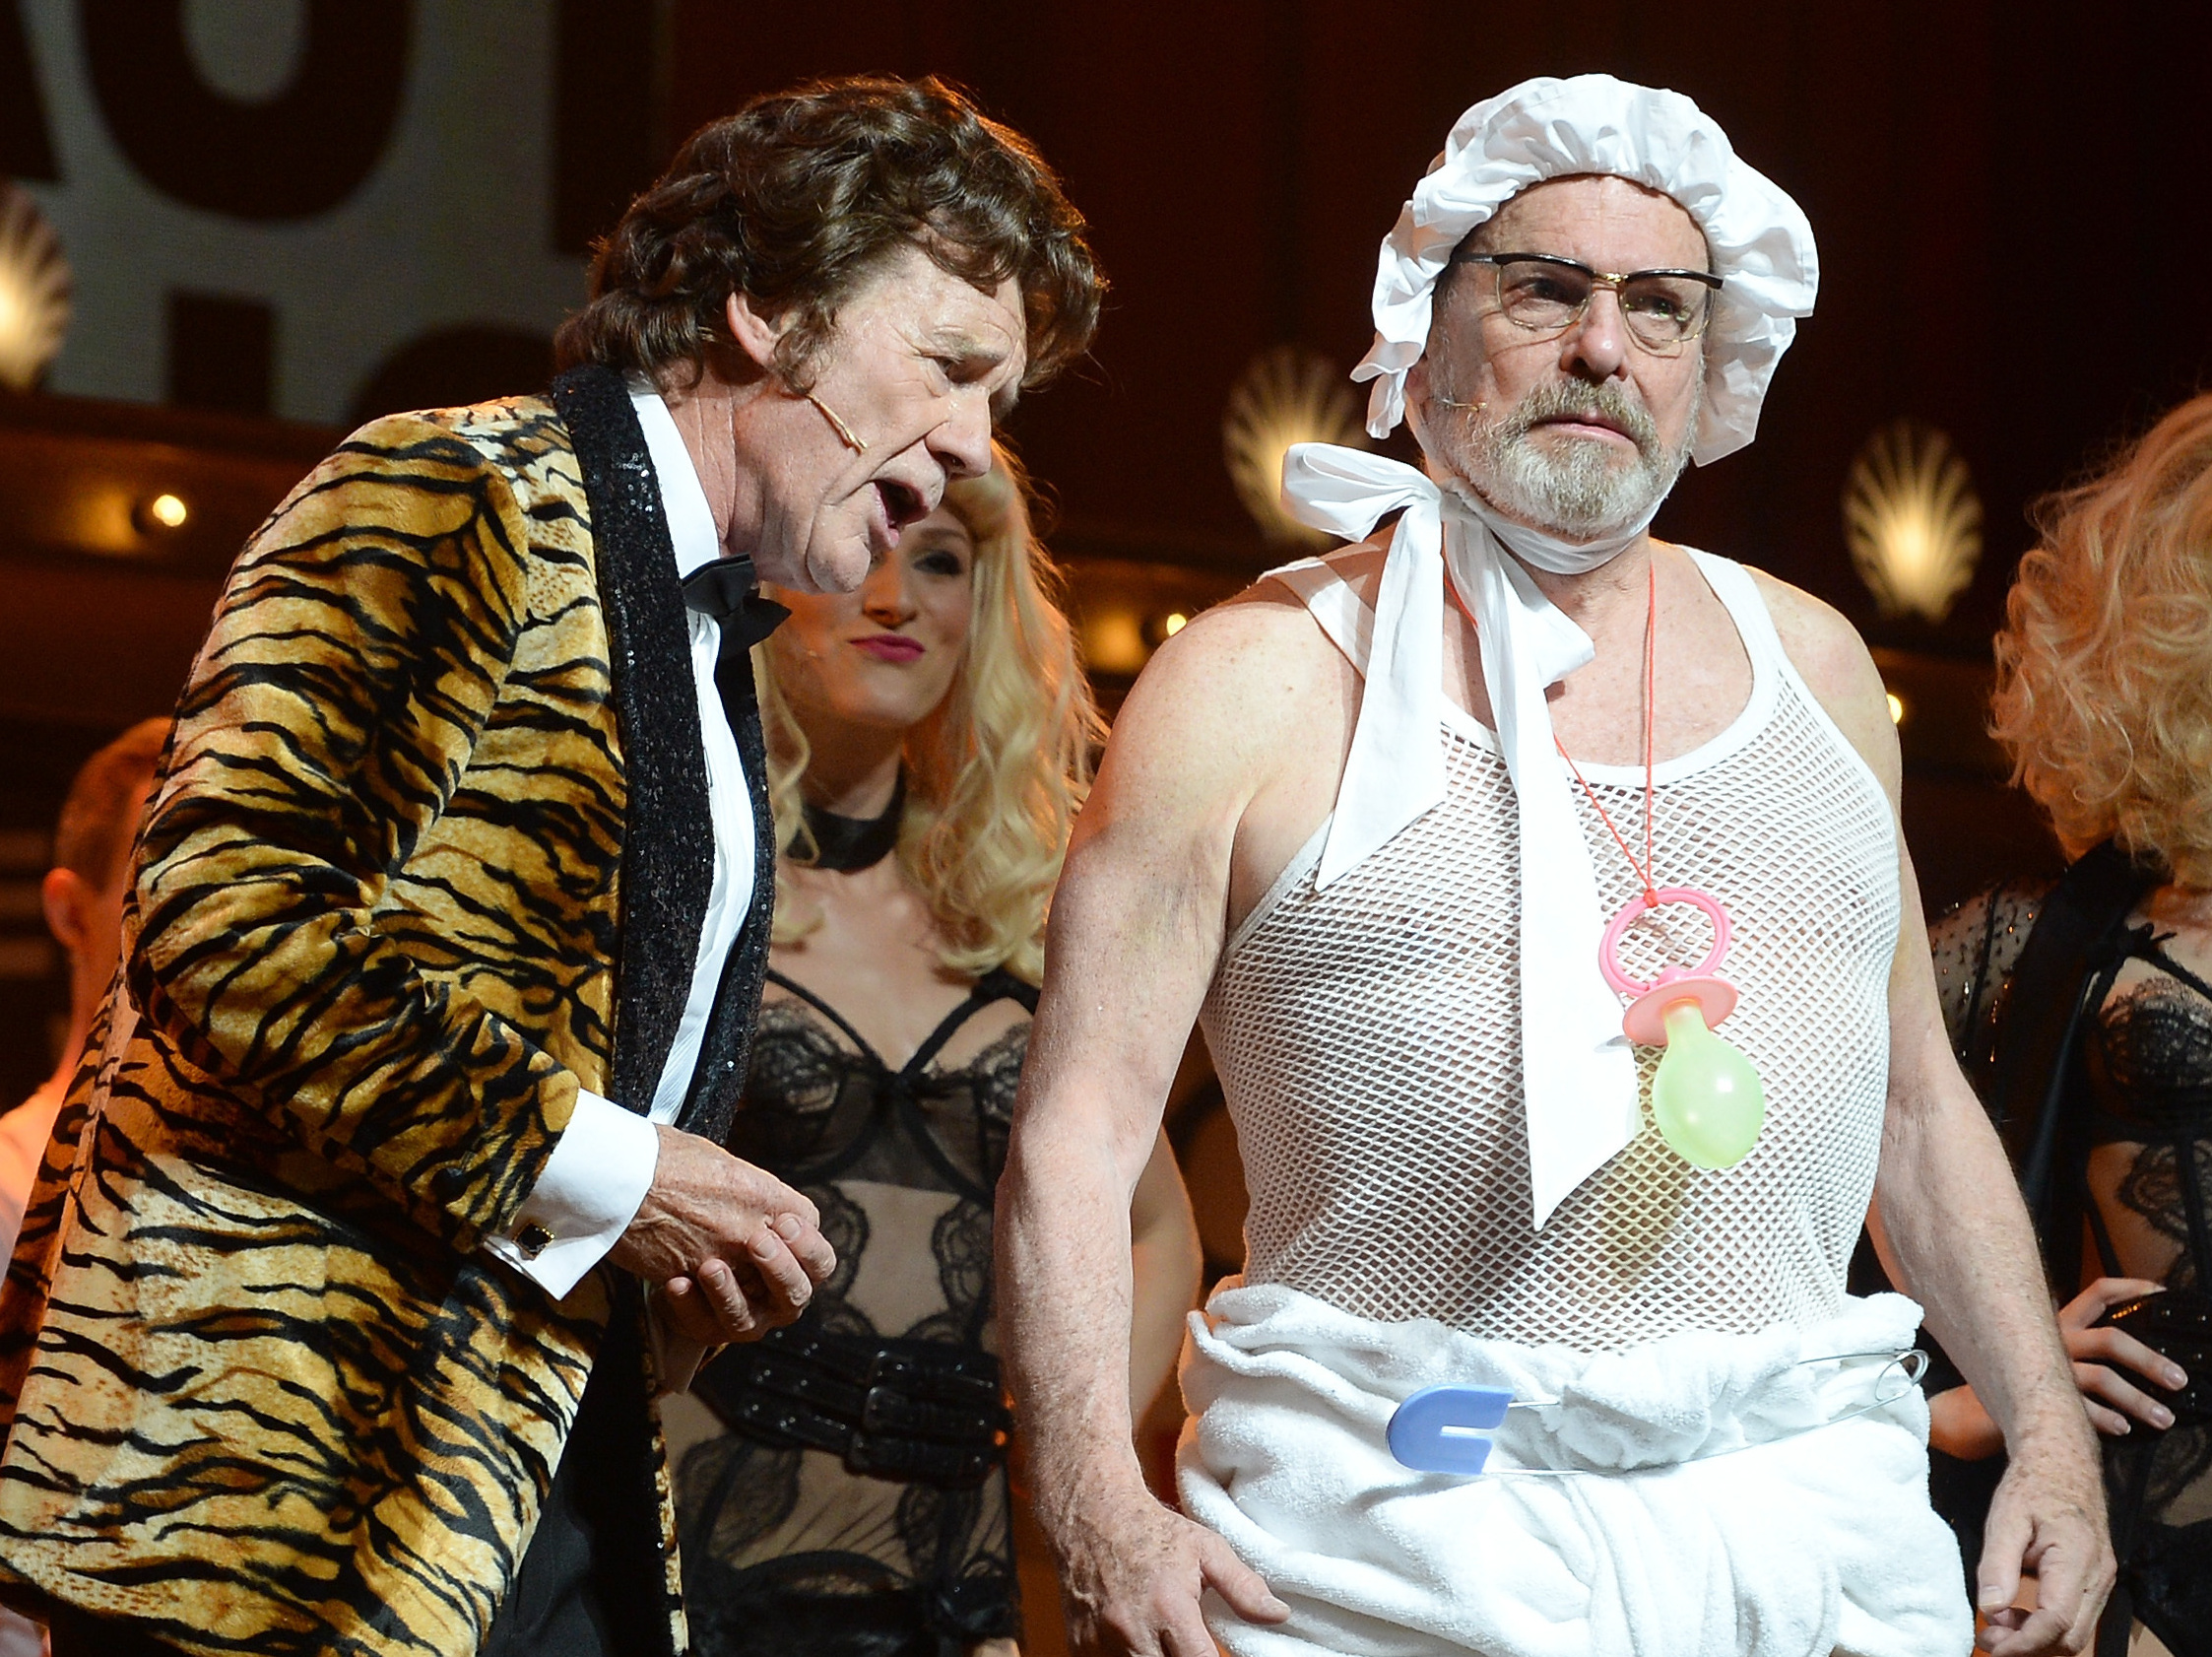 At Monty Python Reunion Show, The Circus Makes One Last Flight